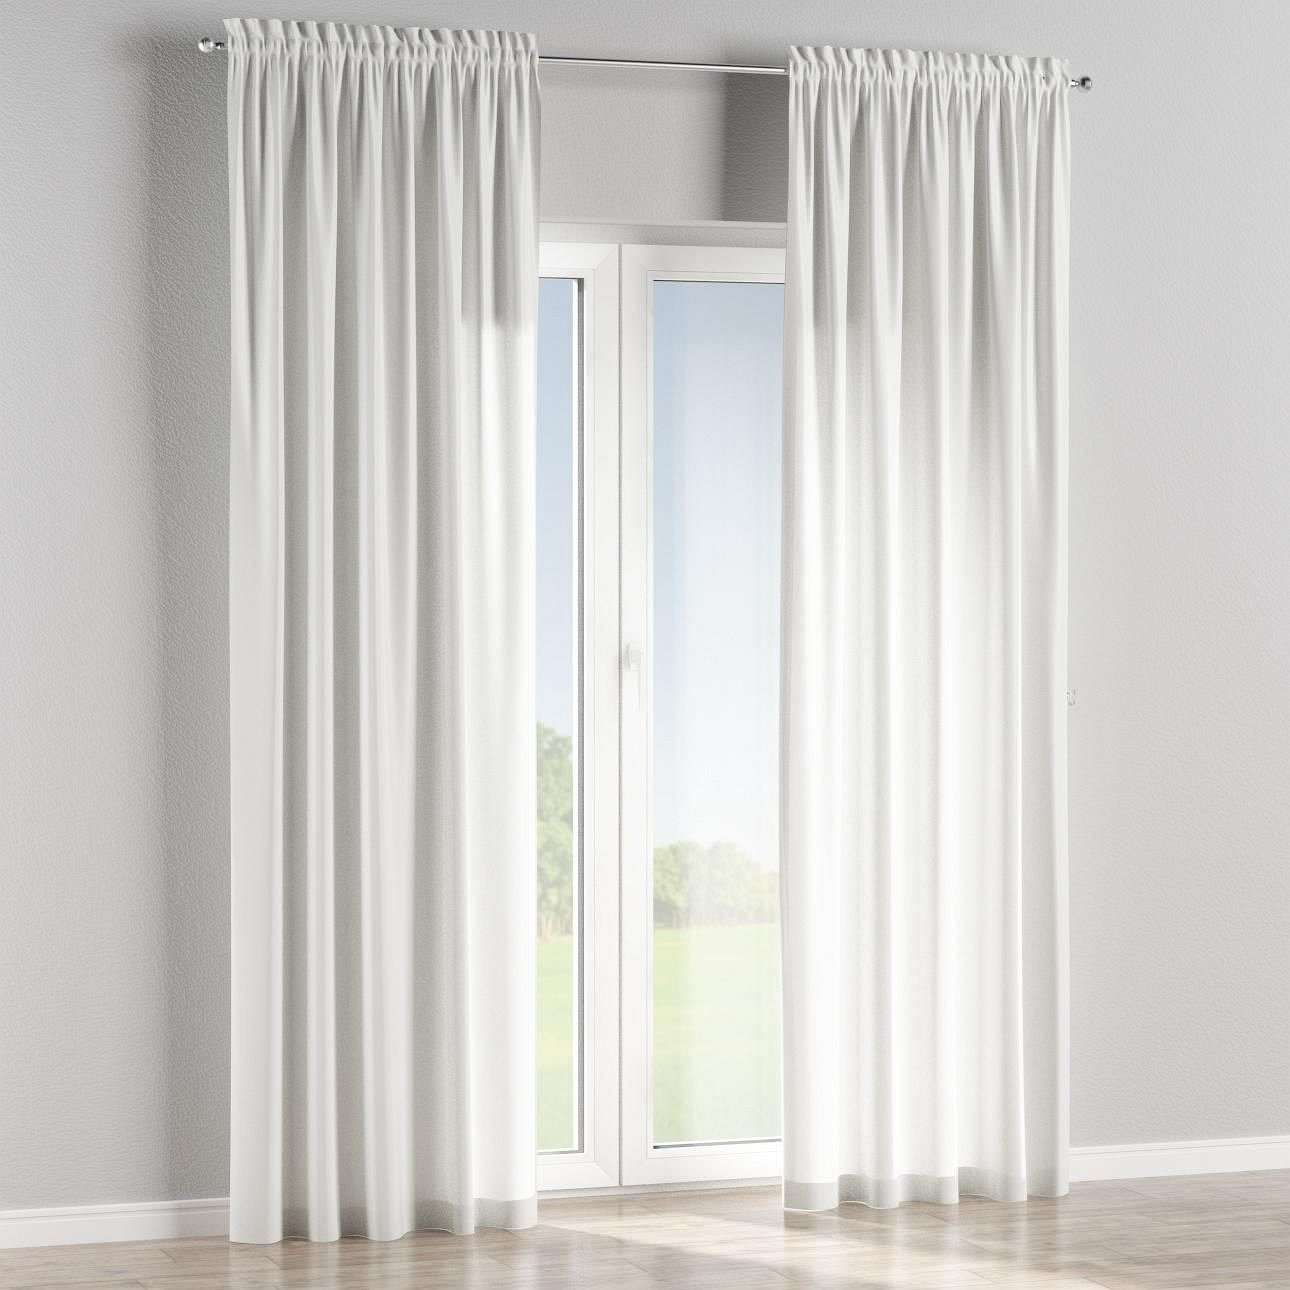 Slot and frill curtains in collection Fleur , fabric: 137-26